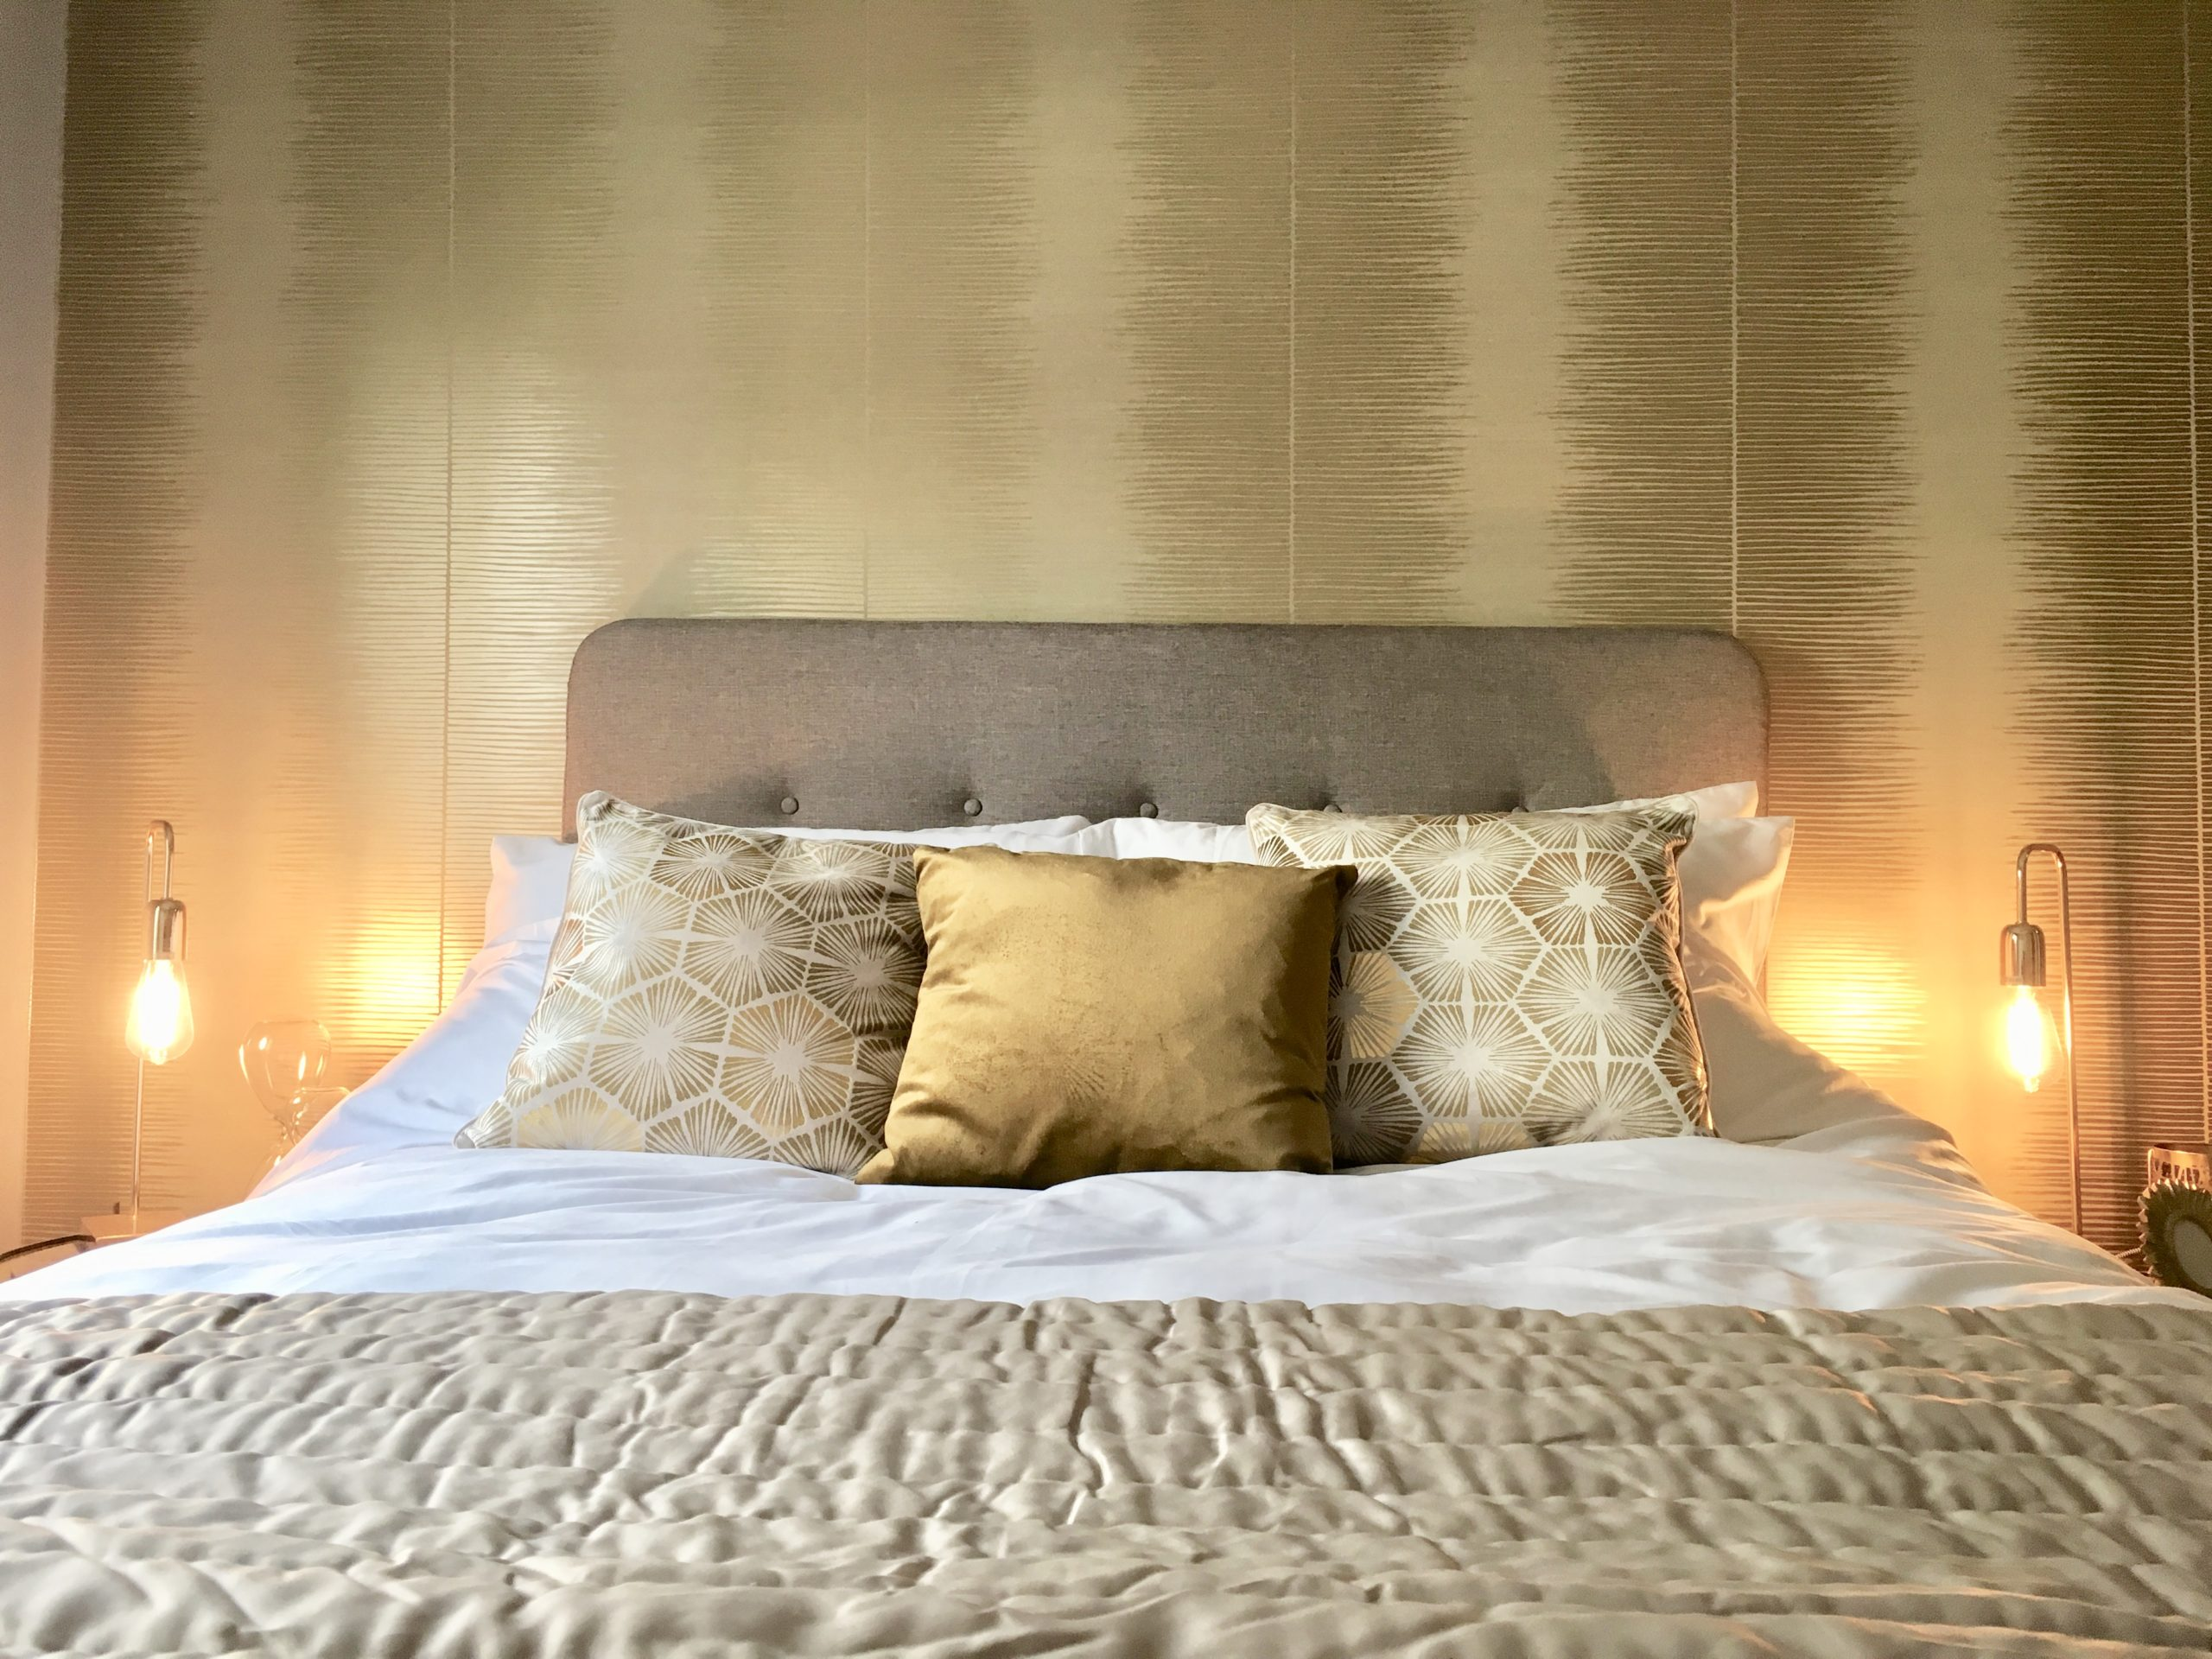 Gold Plume wallpaper by Cole and Son in show home bedroom designed by Amelia Wilson Interiors Ltd